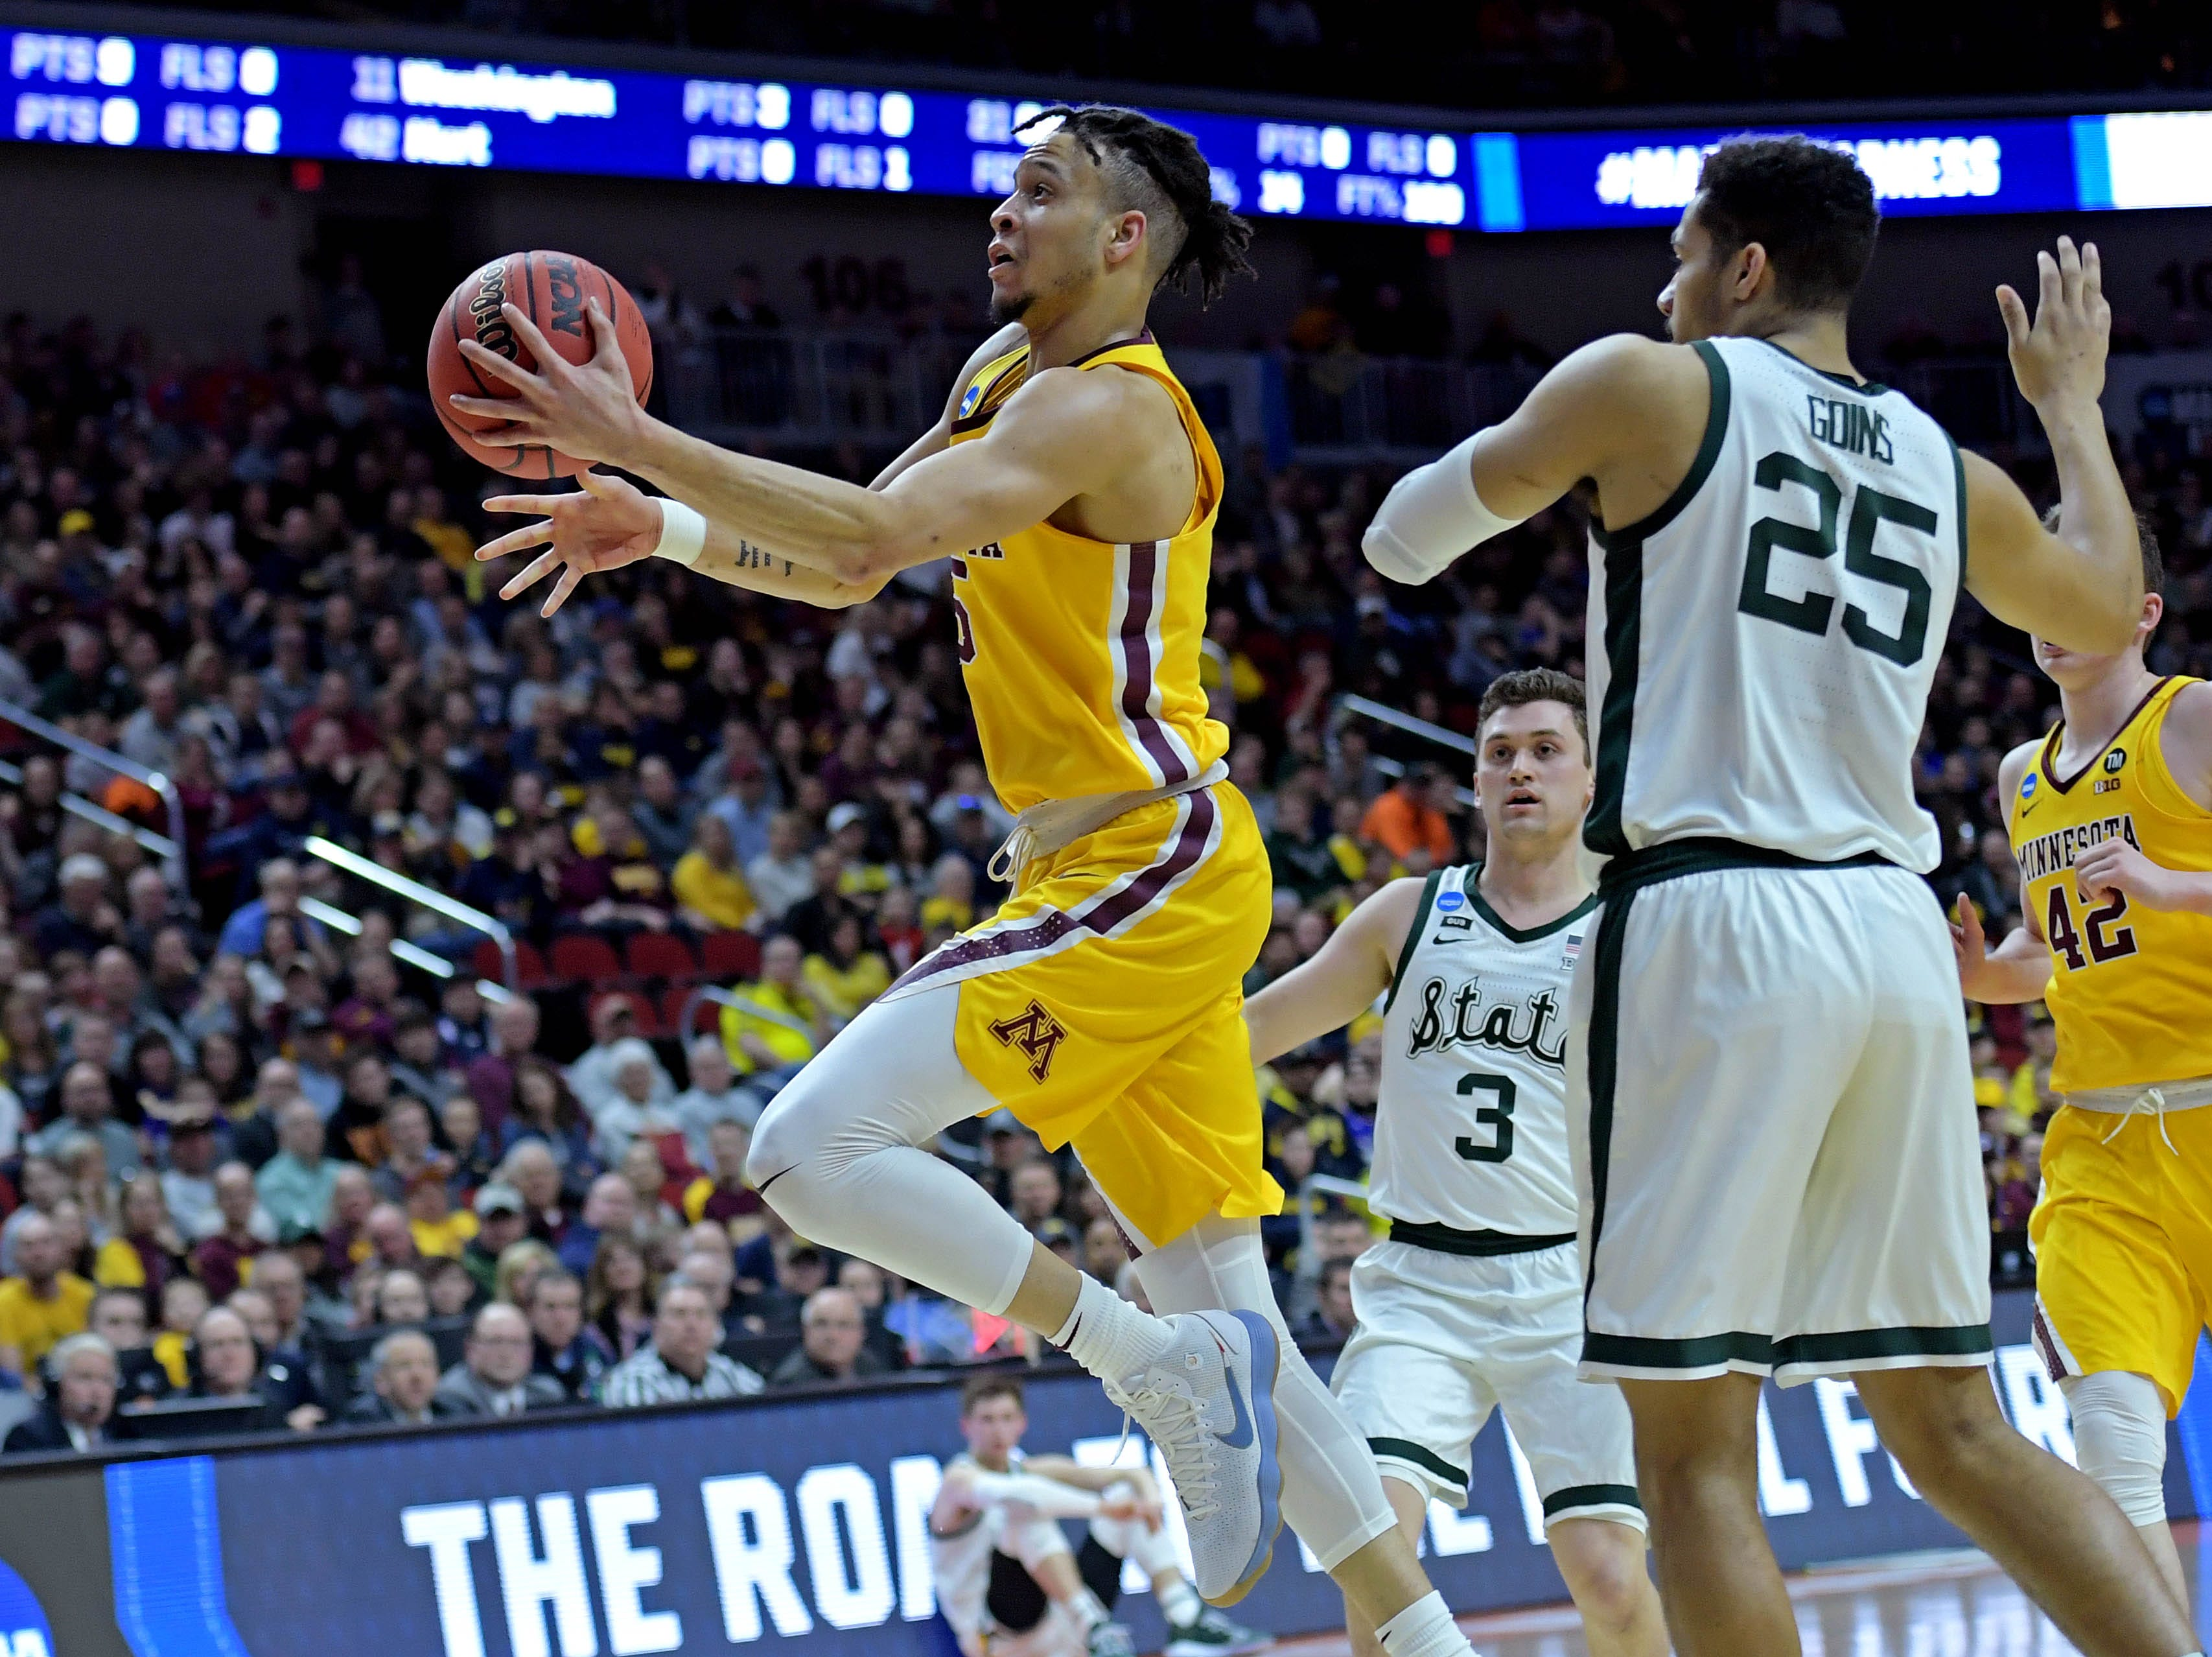 Mar 23, 2019; Des Moines, IA, United States; Minnesota Golden Gophers guard Amir Coffey (5) shoots the ball against Michigan State Spartans forward Kenny Goins (25) in the second round of the 2019 NCAA Tournament at Wells Fargo Arena. Mandatory Credit: Steven Branscombe-USA TODAY Sports